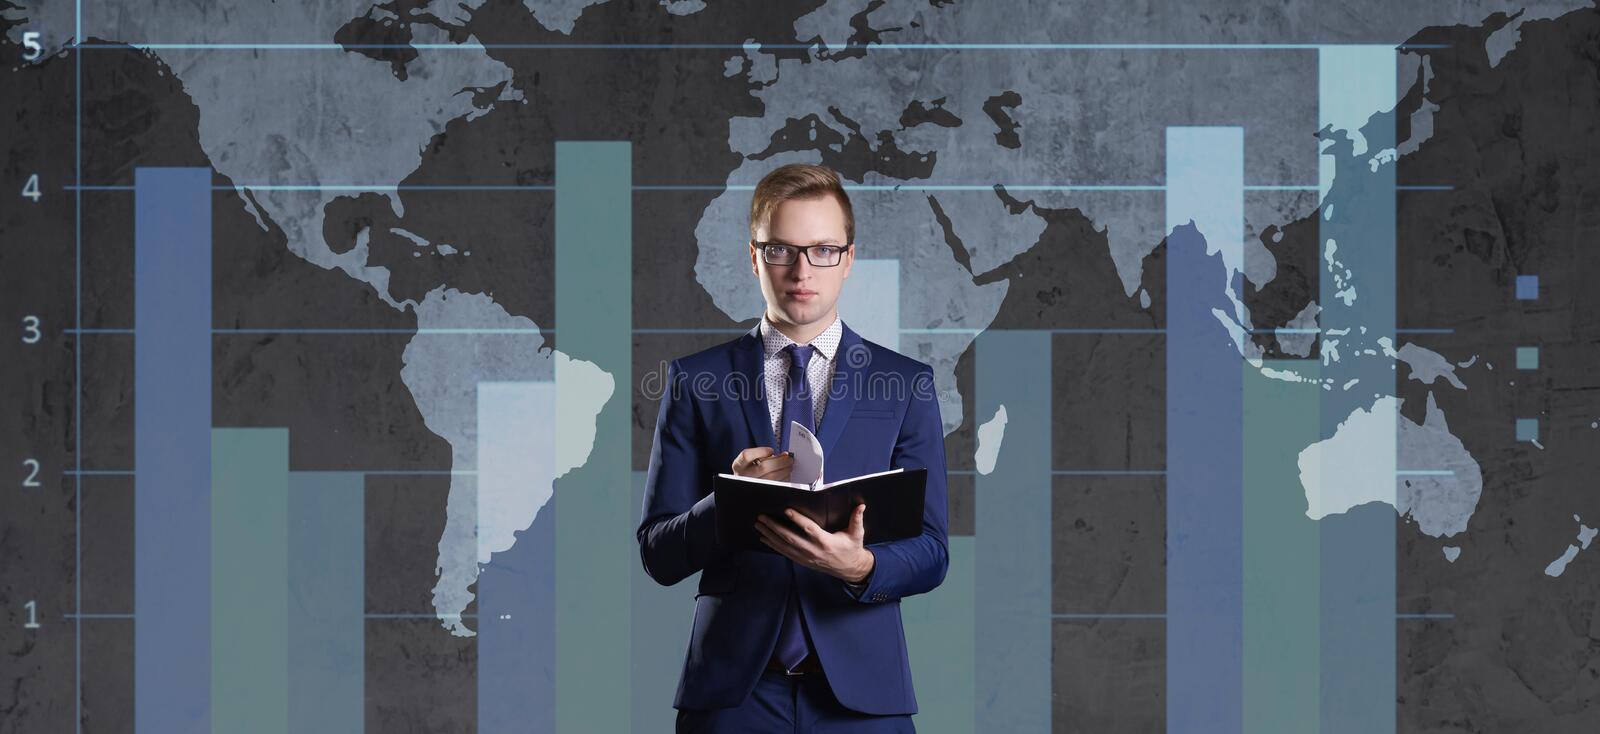 Businessman with organizer standing over diagram. World map background. Business, globalization, capitalism concept. stock photography